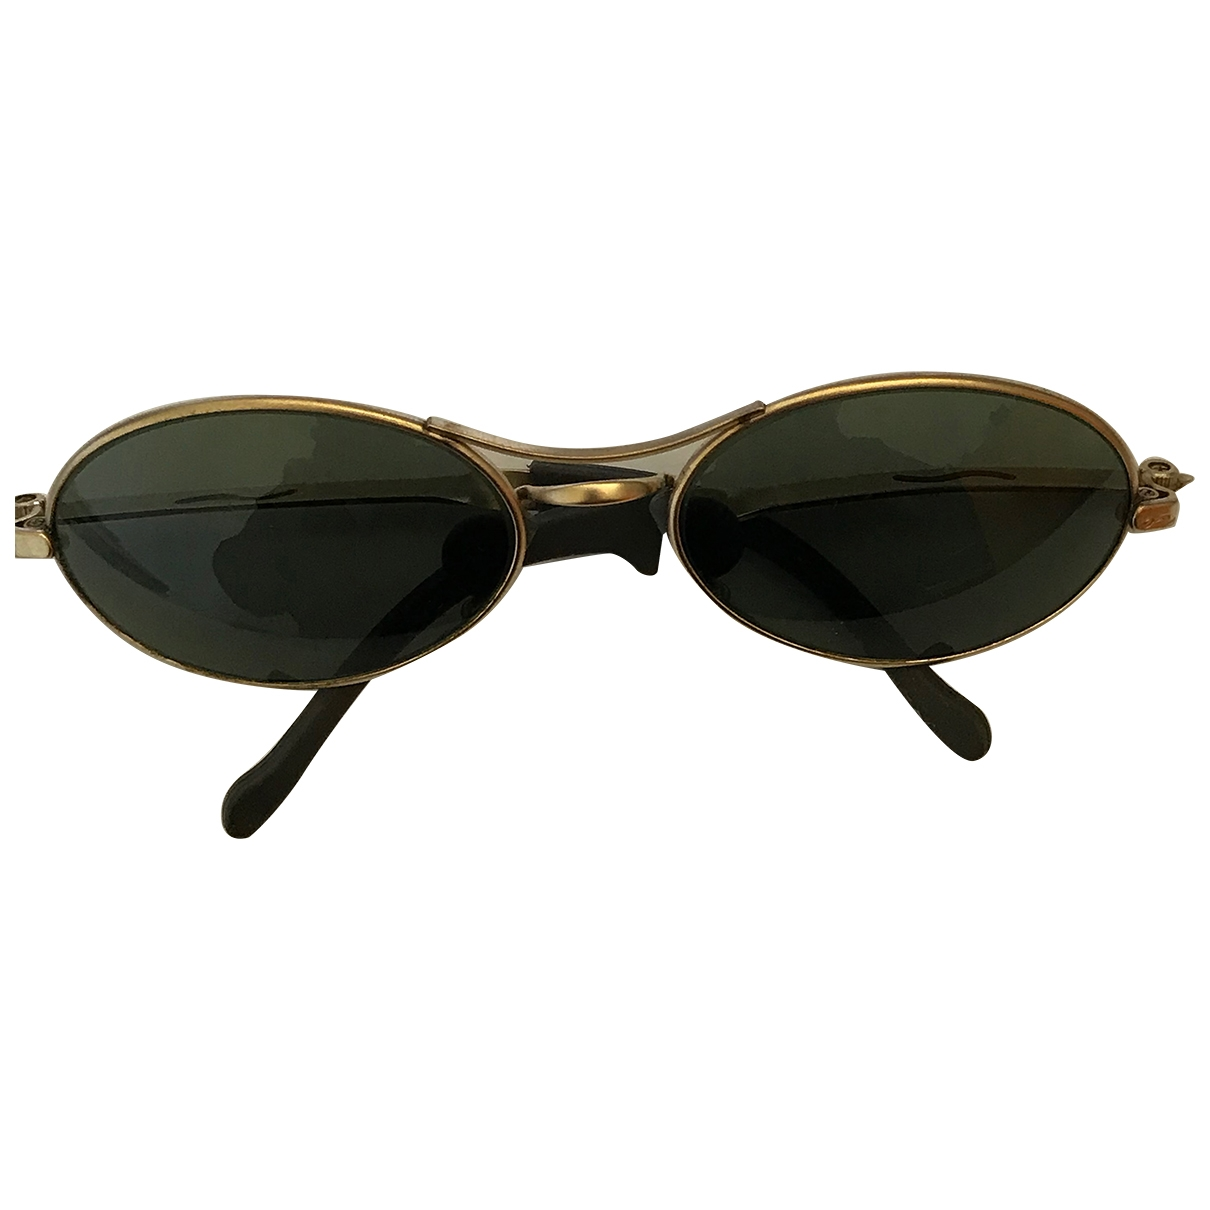 Ray-ban Oval Gold Metal Sunglasses for Men \N